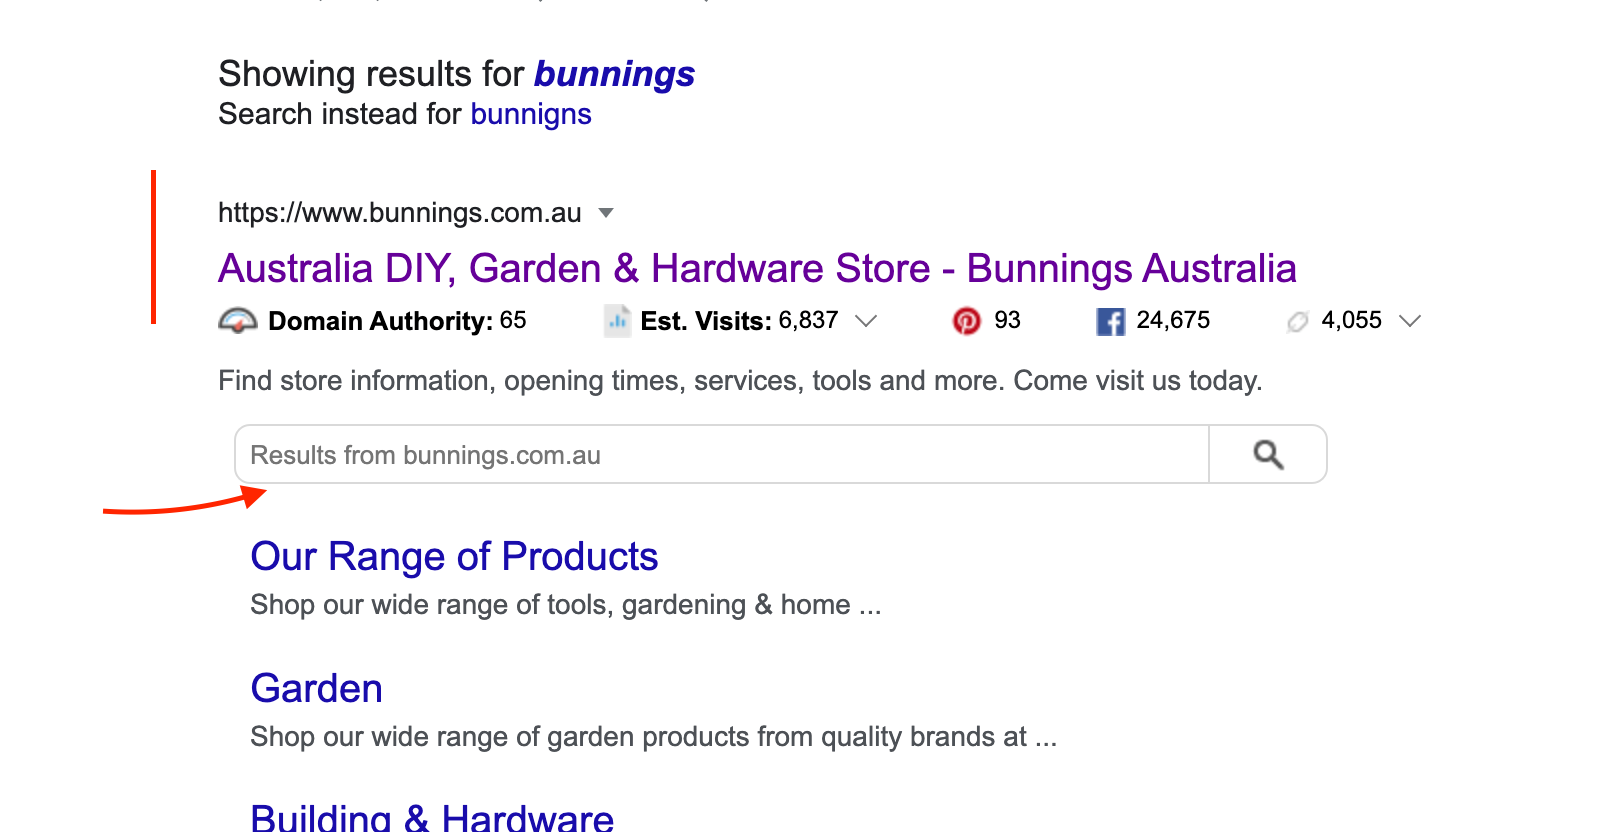 how to get a search box in the search results